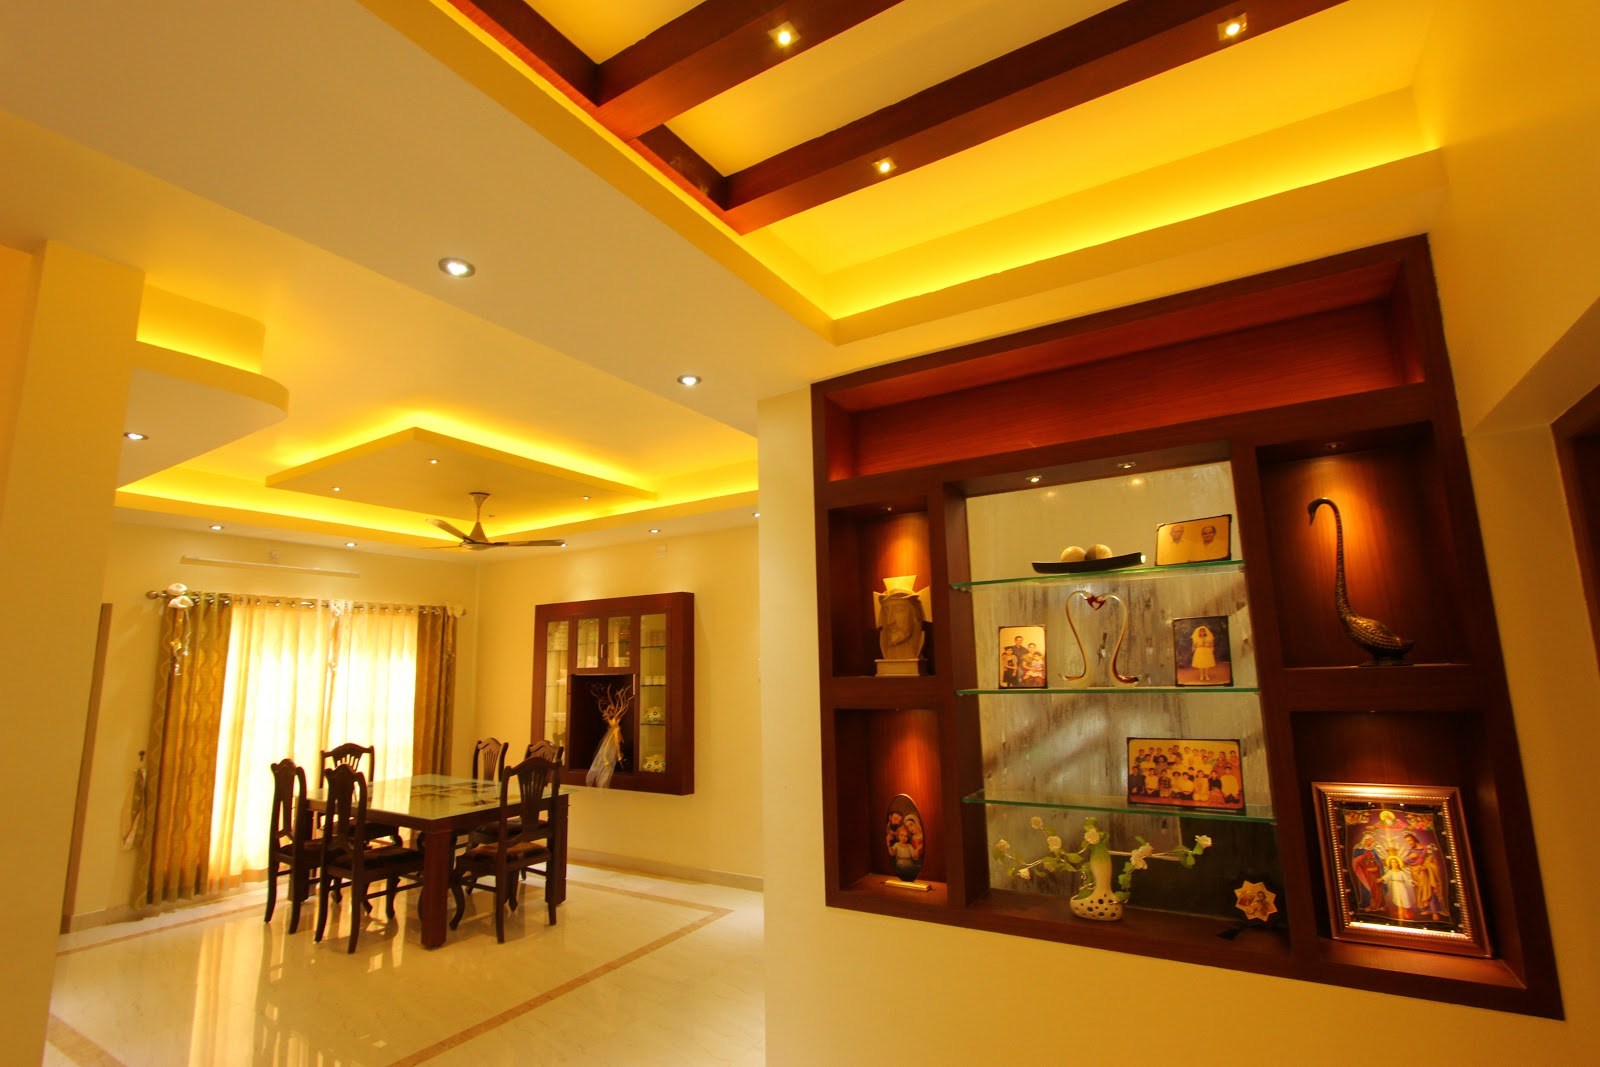 Shilpakala interiors award winning home interior design for Kerala house interior arch design